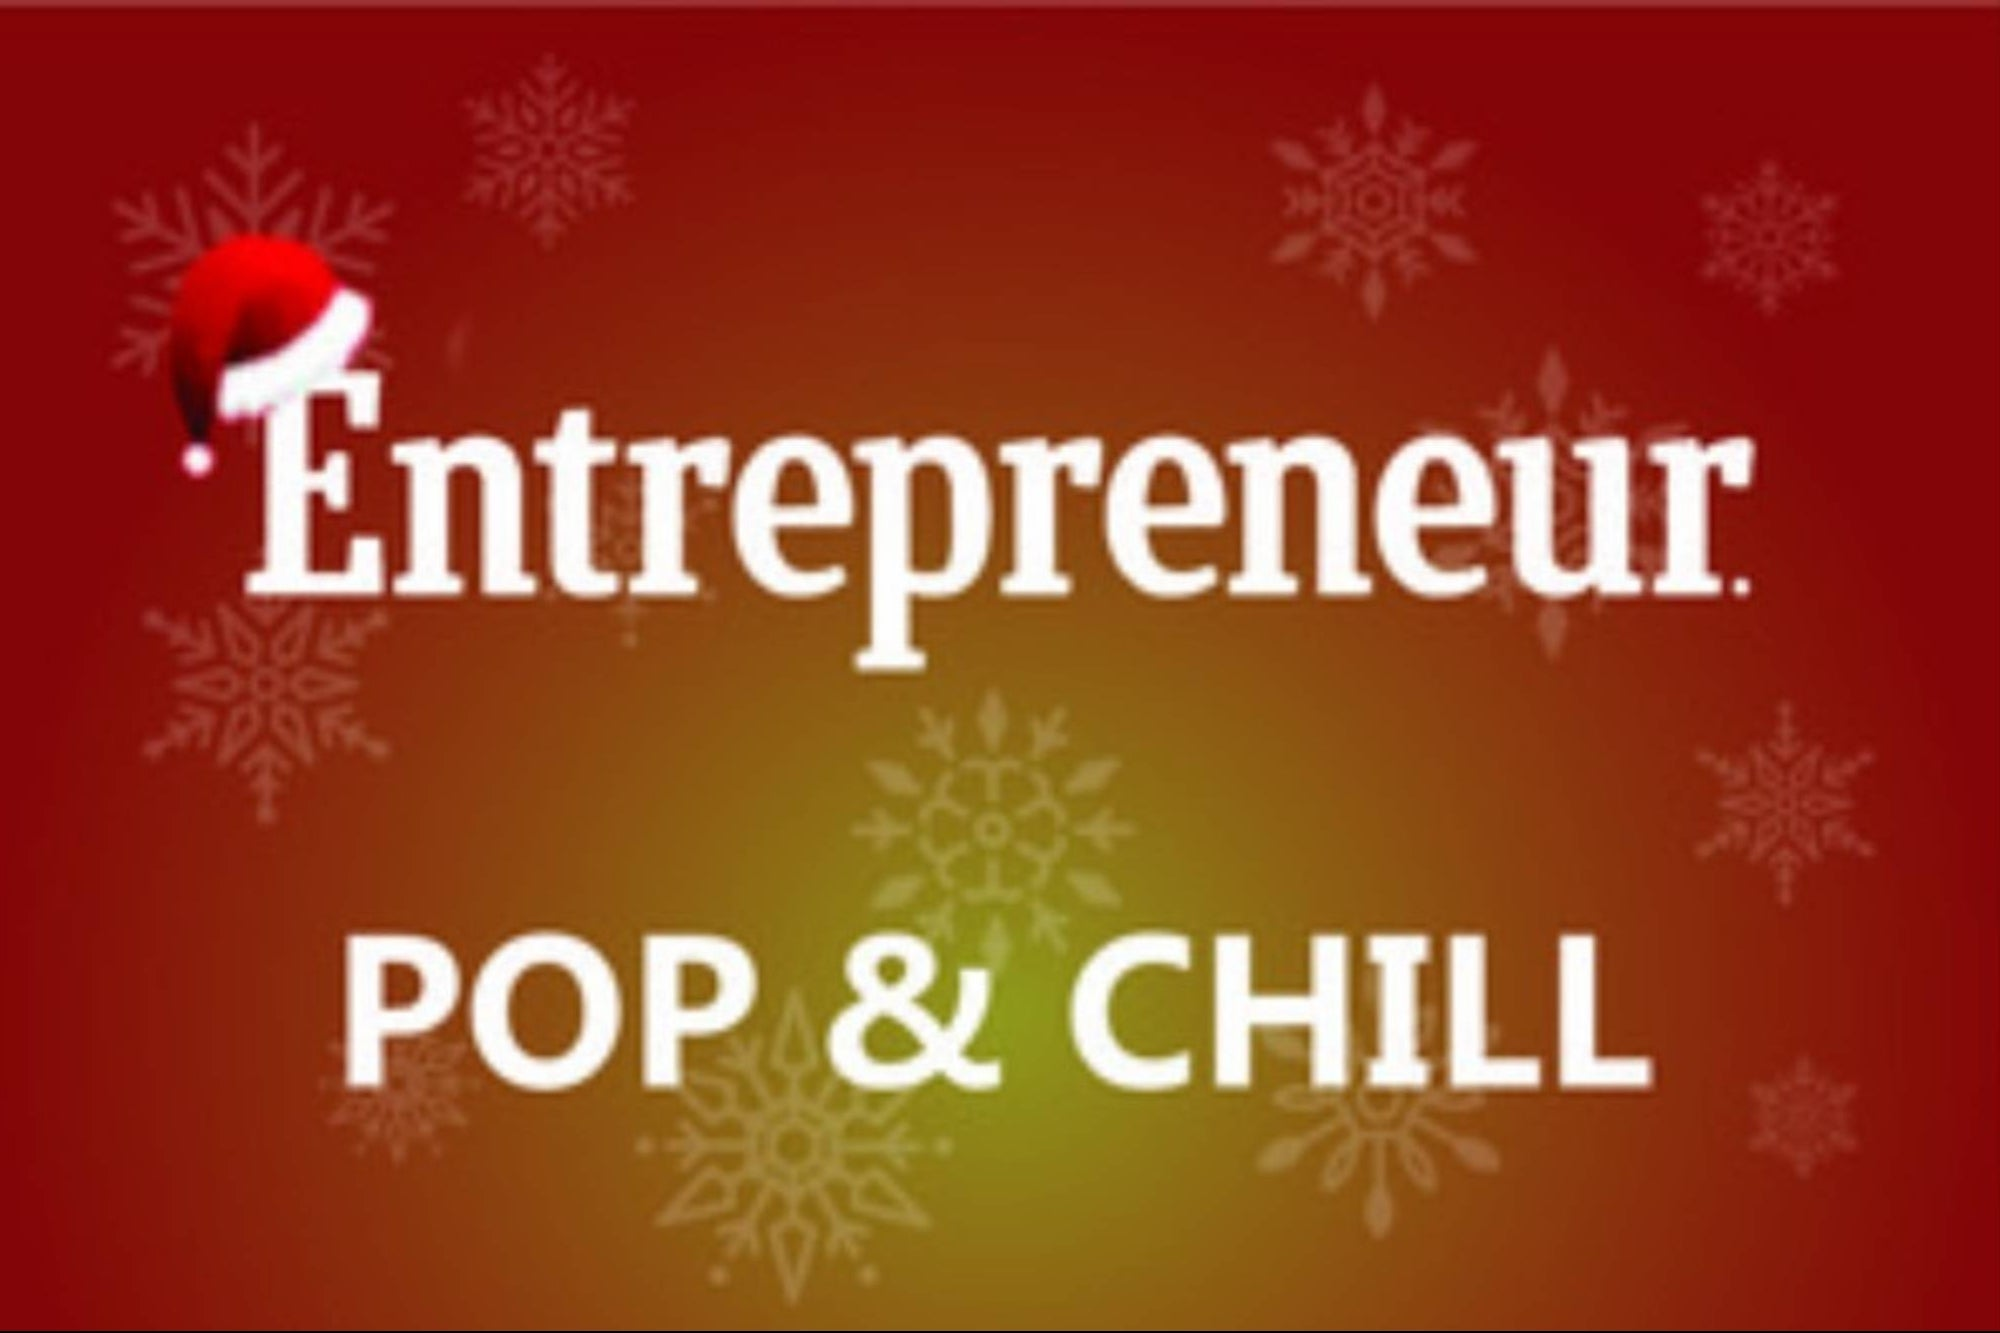 Get active with a Christmas playlist created especially for you, an entrepreneur!